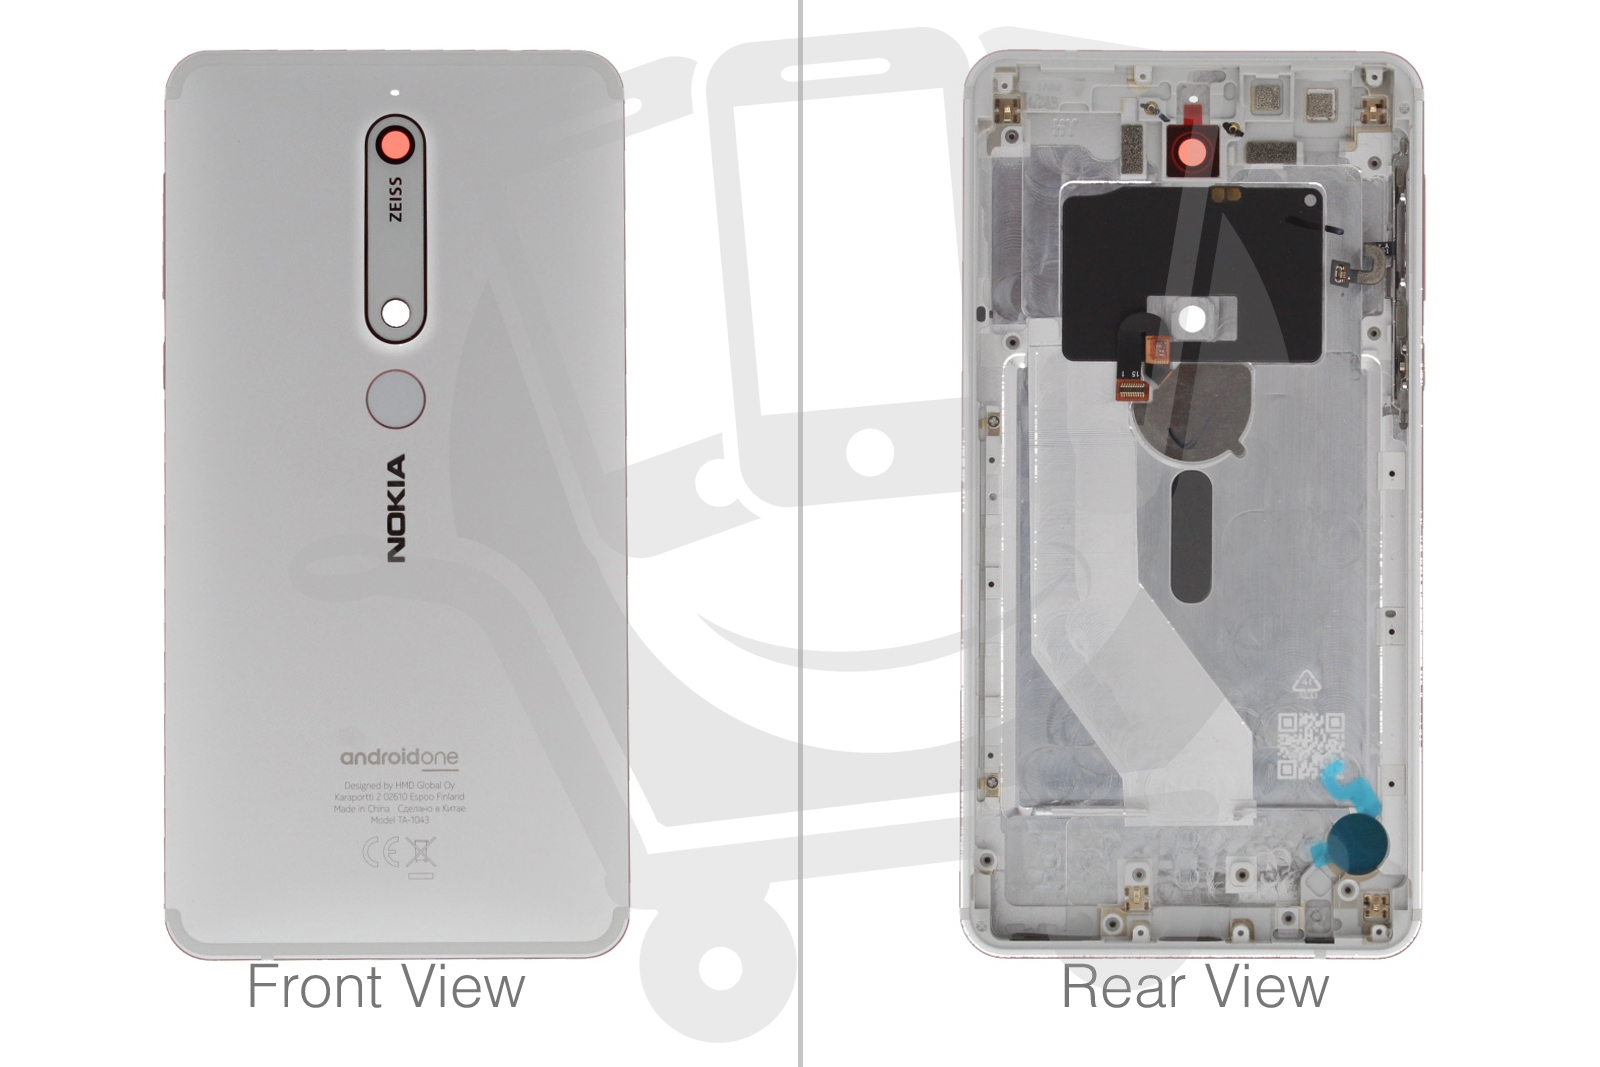 Details about Genuine Nokia 6 1 2018 Dual Sim White Iron Rear / Battery  Cover with NFC - 20PL2